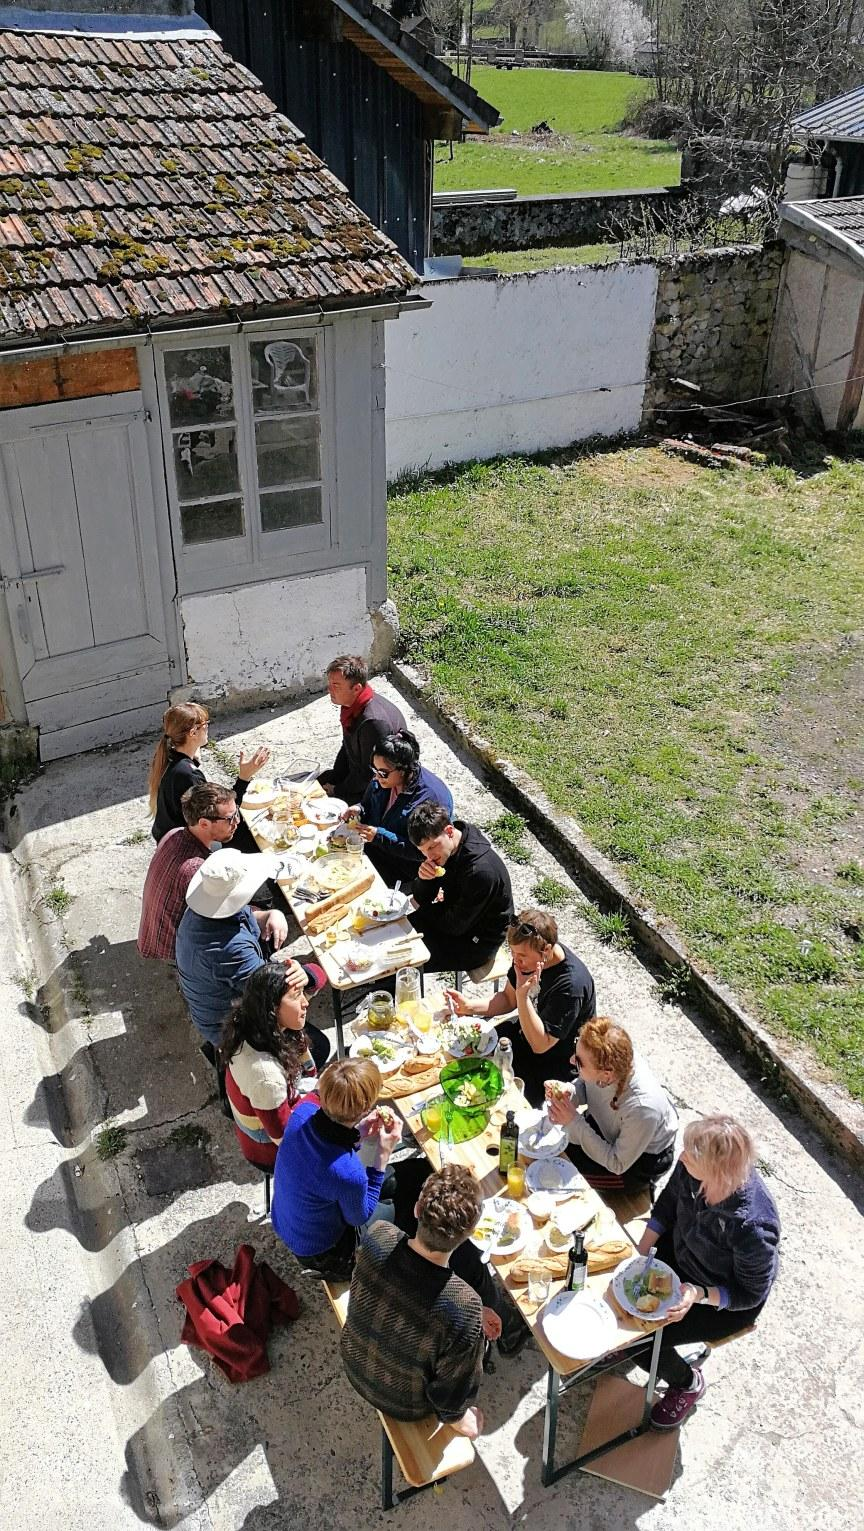 Lunch in the spring sun